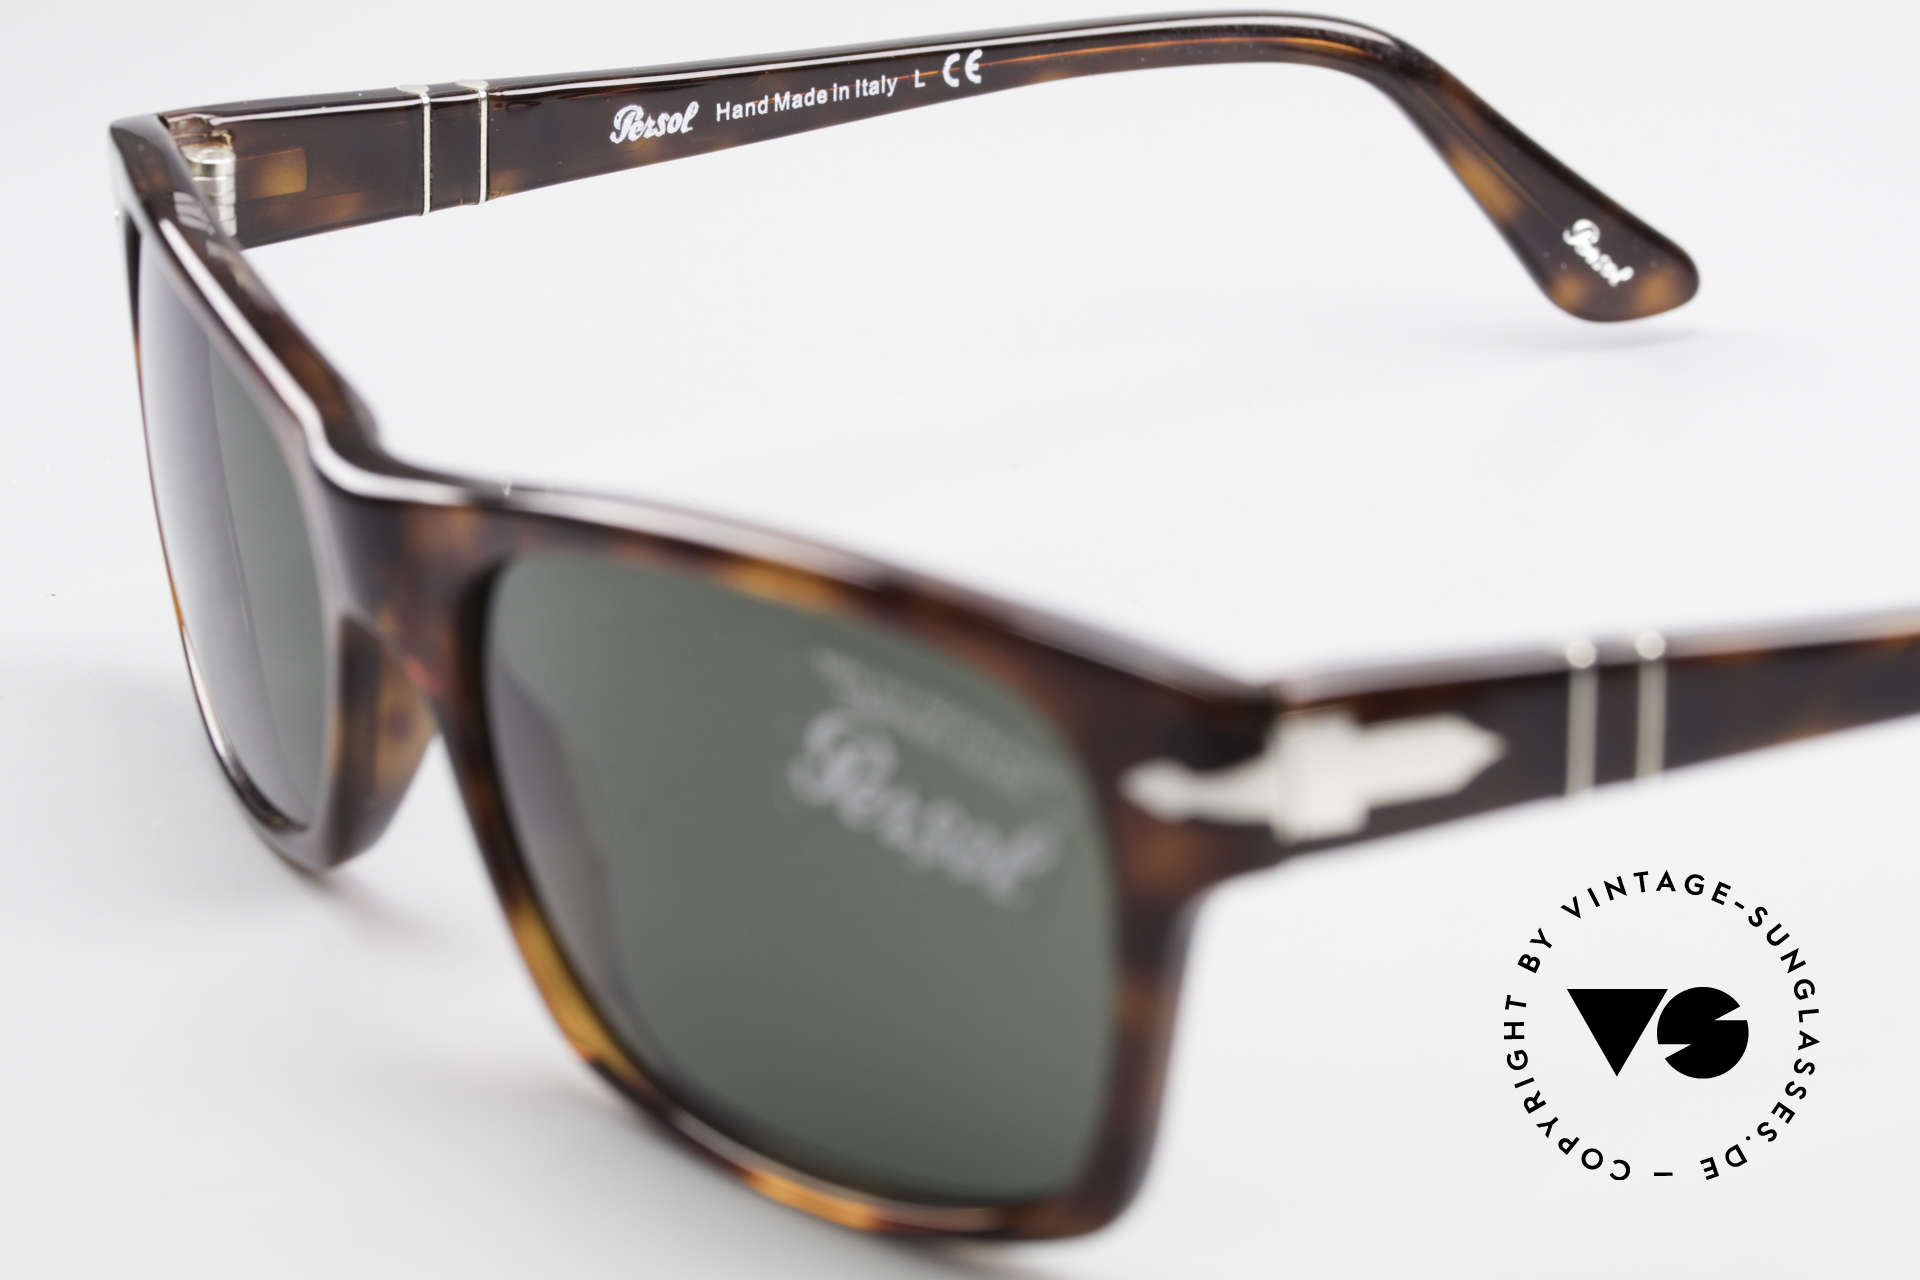 Persol 3037 Designer Sunglasses Unisex L, the sun lenses could be replaced with lenses of any kind, Made for Men and Women